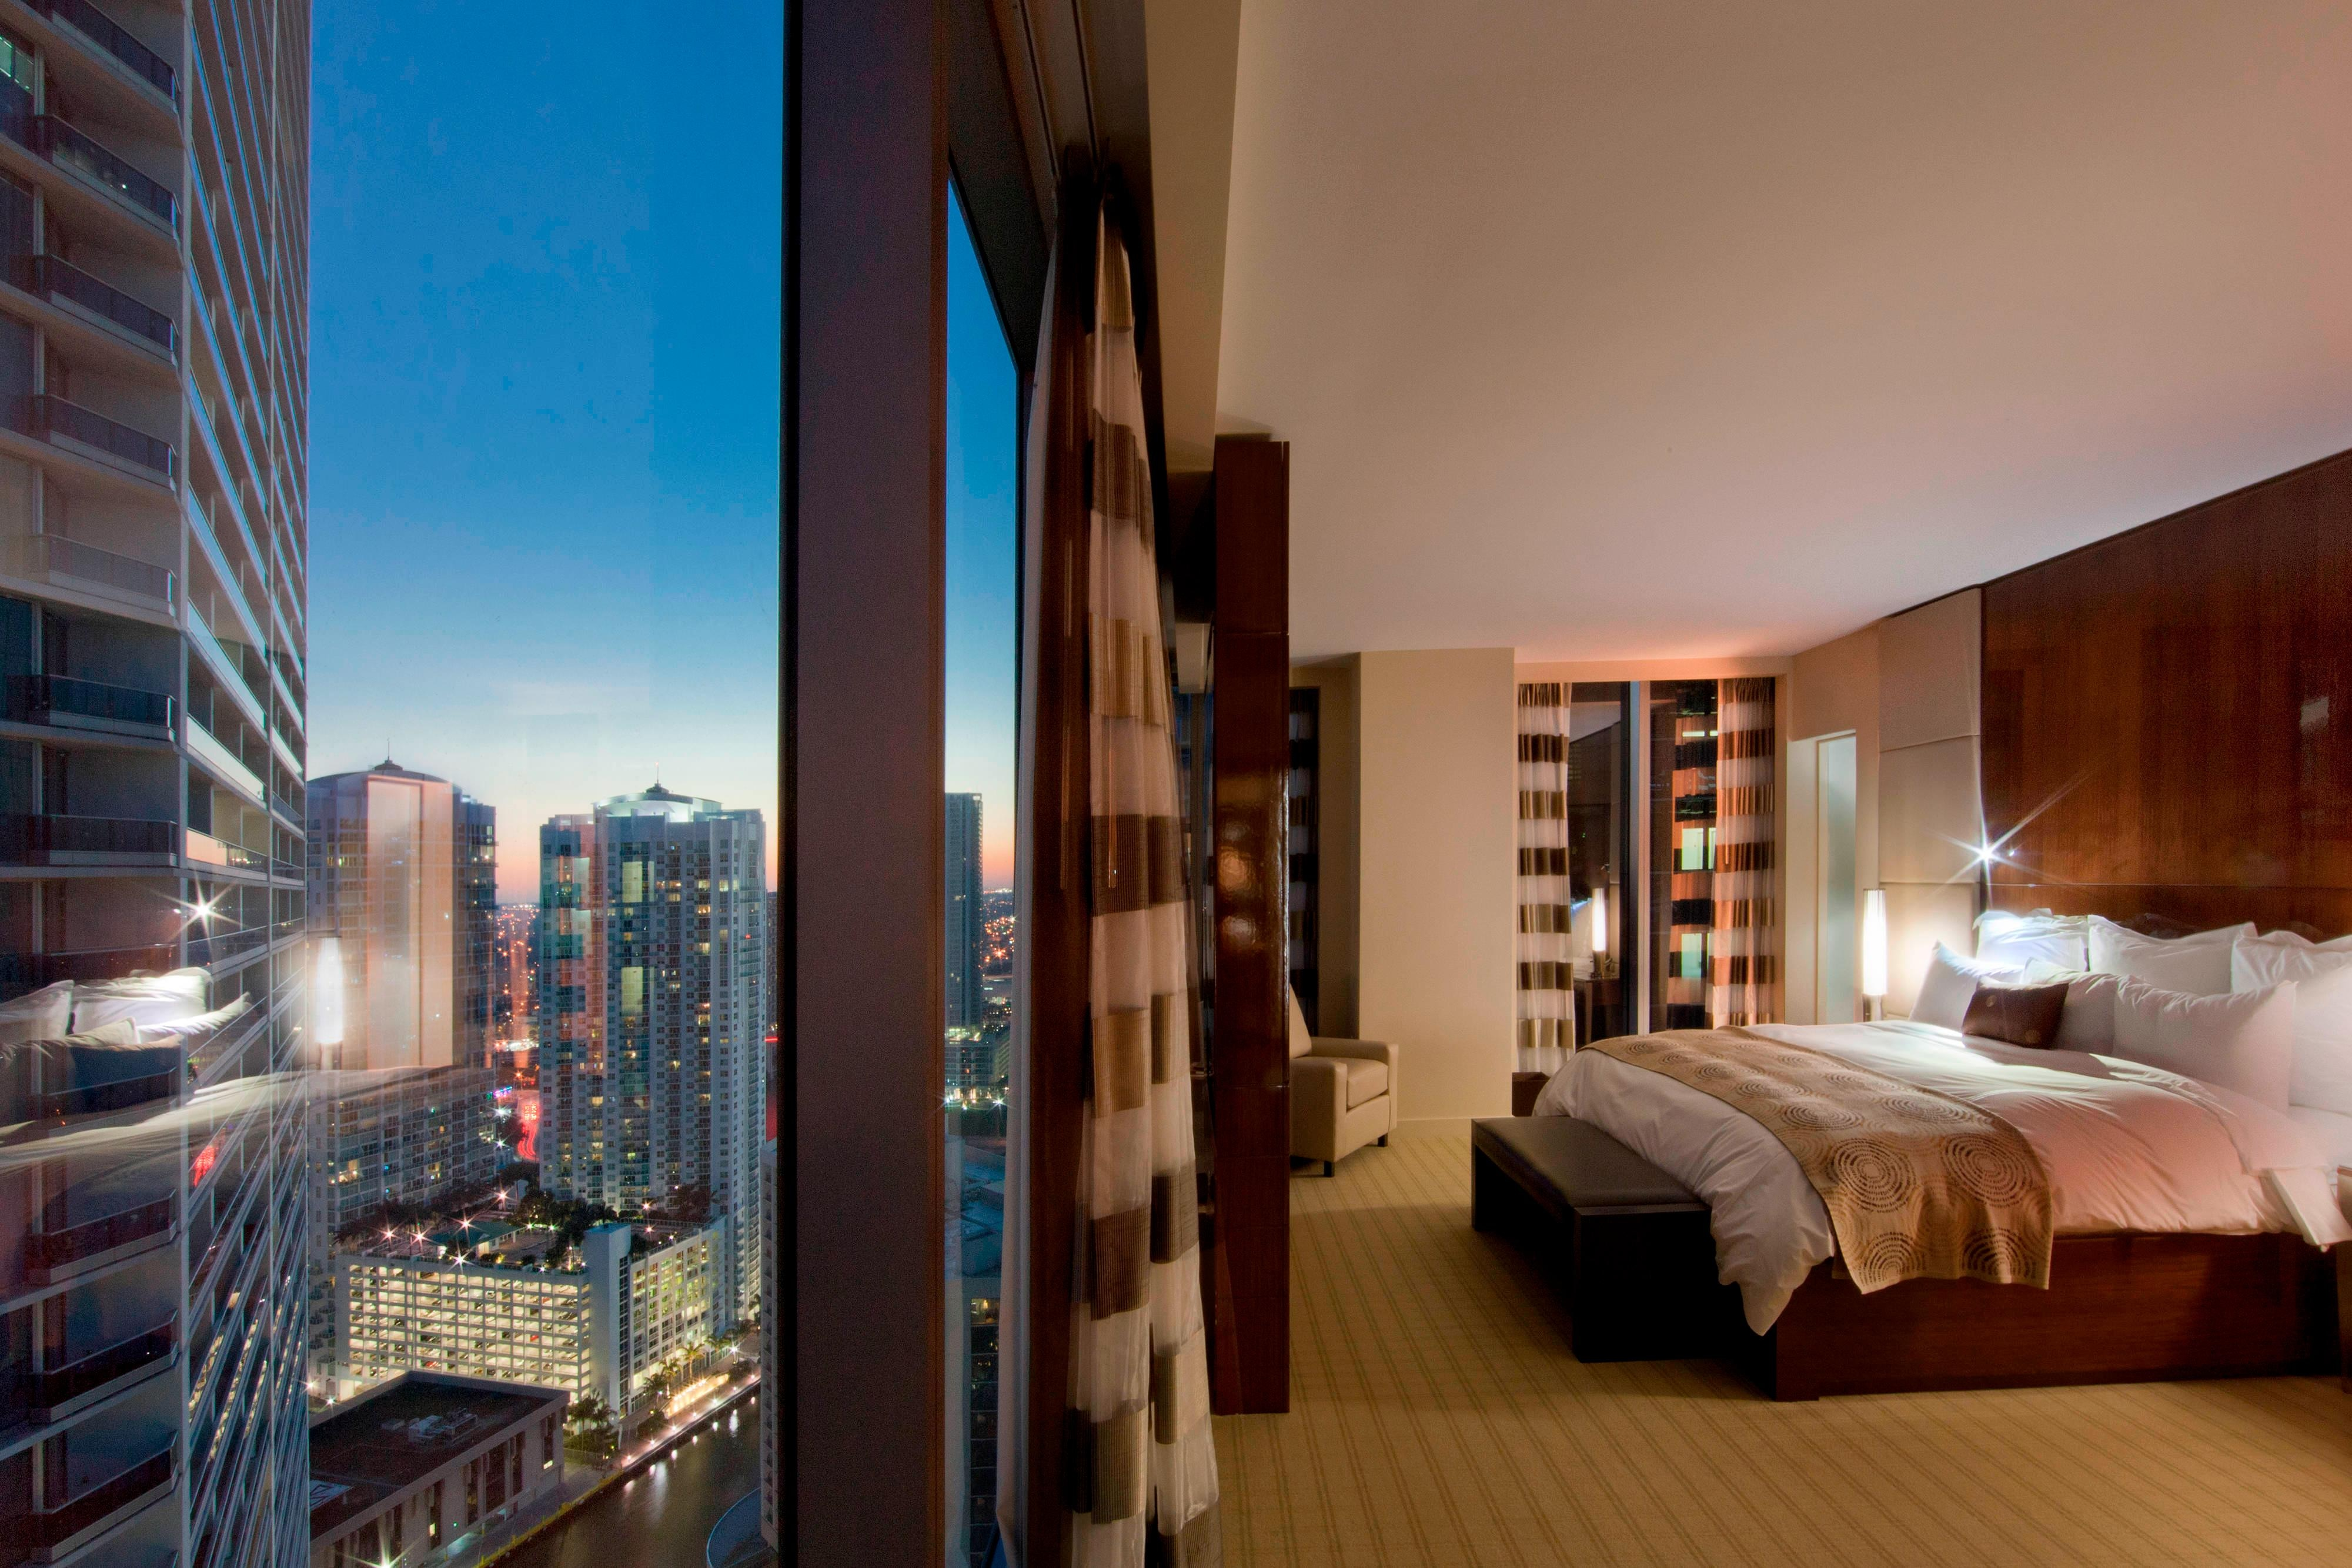 miami hotel rooms, downtown